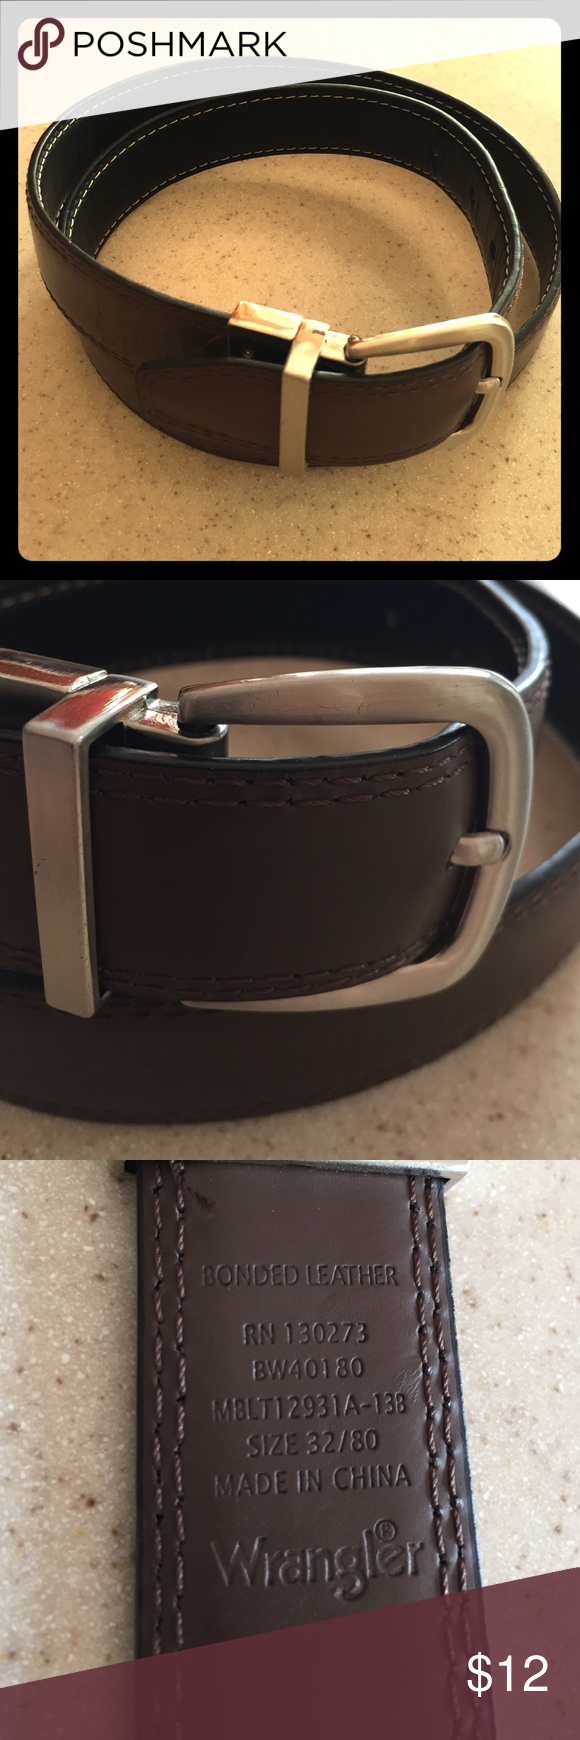 0136f213369 Men s leather reversible belt